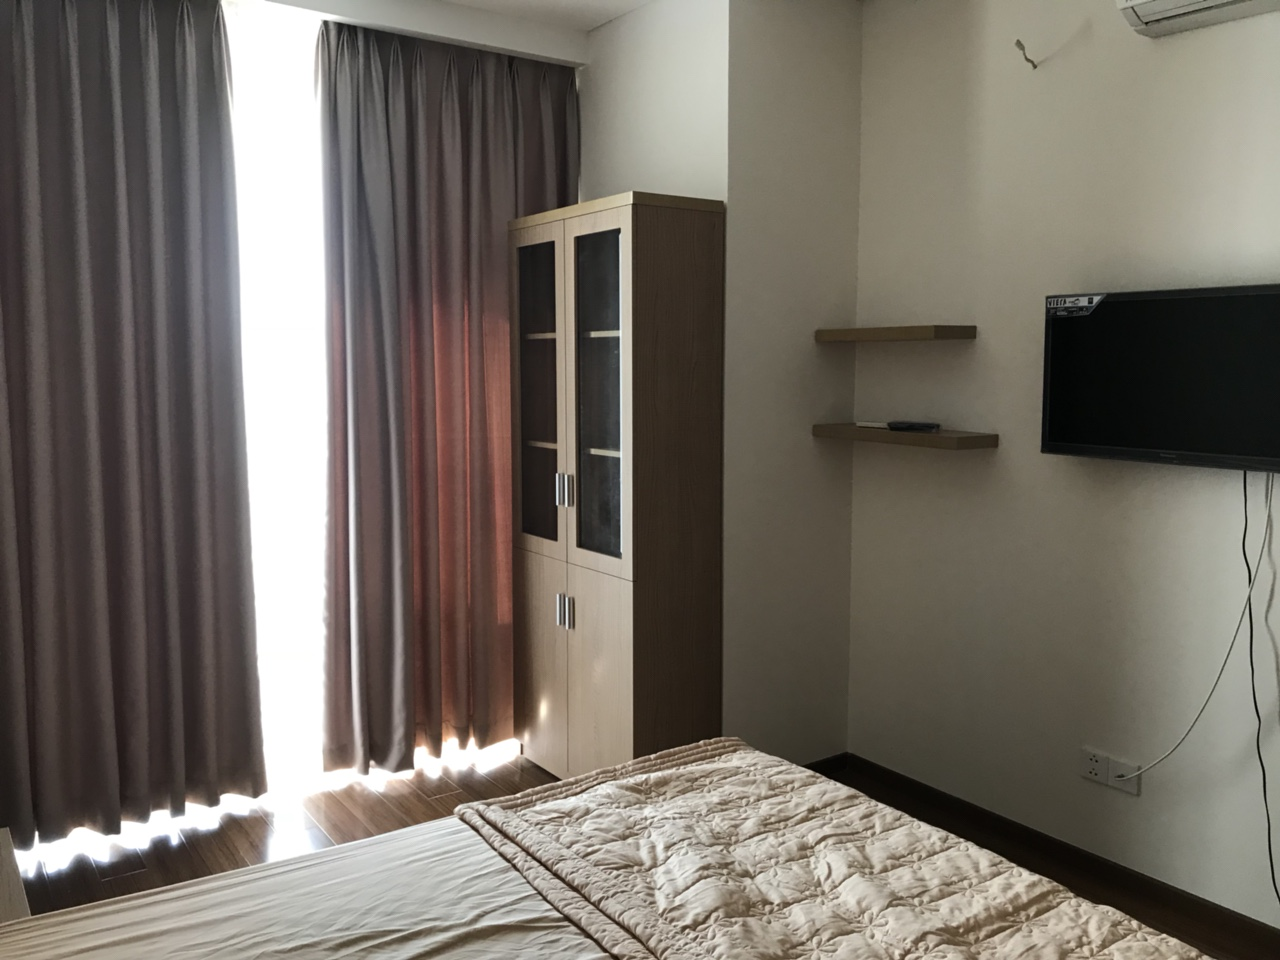 Thaodien pearl apartment for rent in district 2 hcmc D204125 (6)